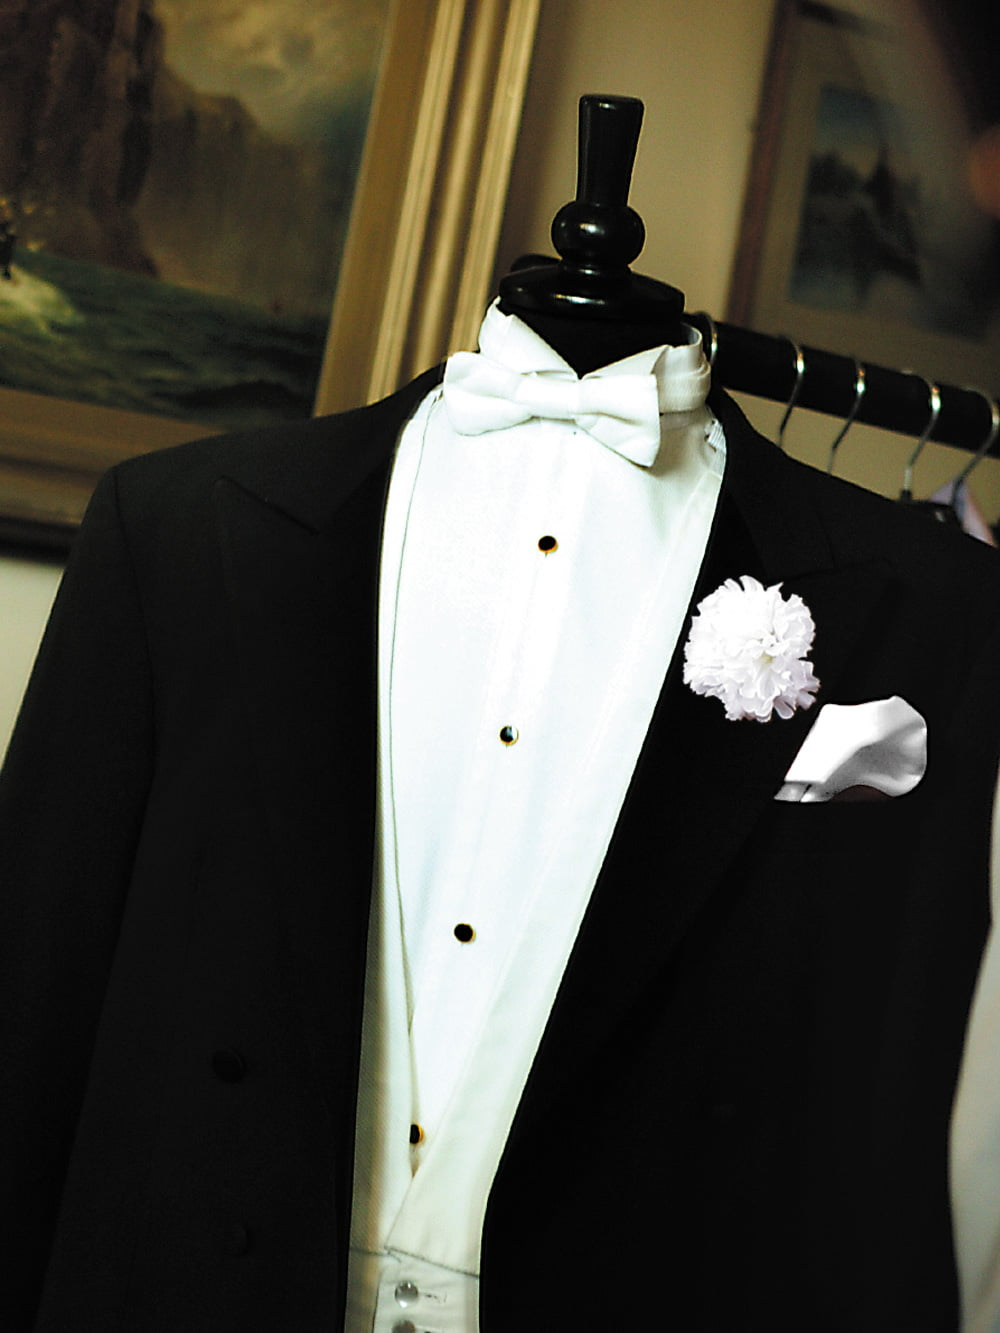 White Tie Tuxedo Formal Wear Bespoke Suit Savile Row Tailor, London and Cheshire